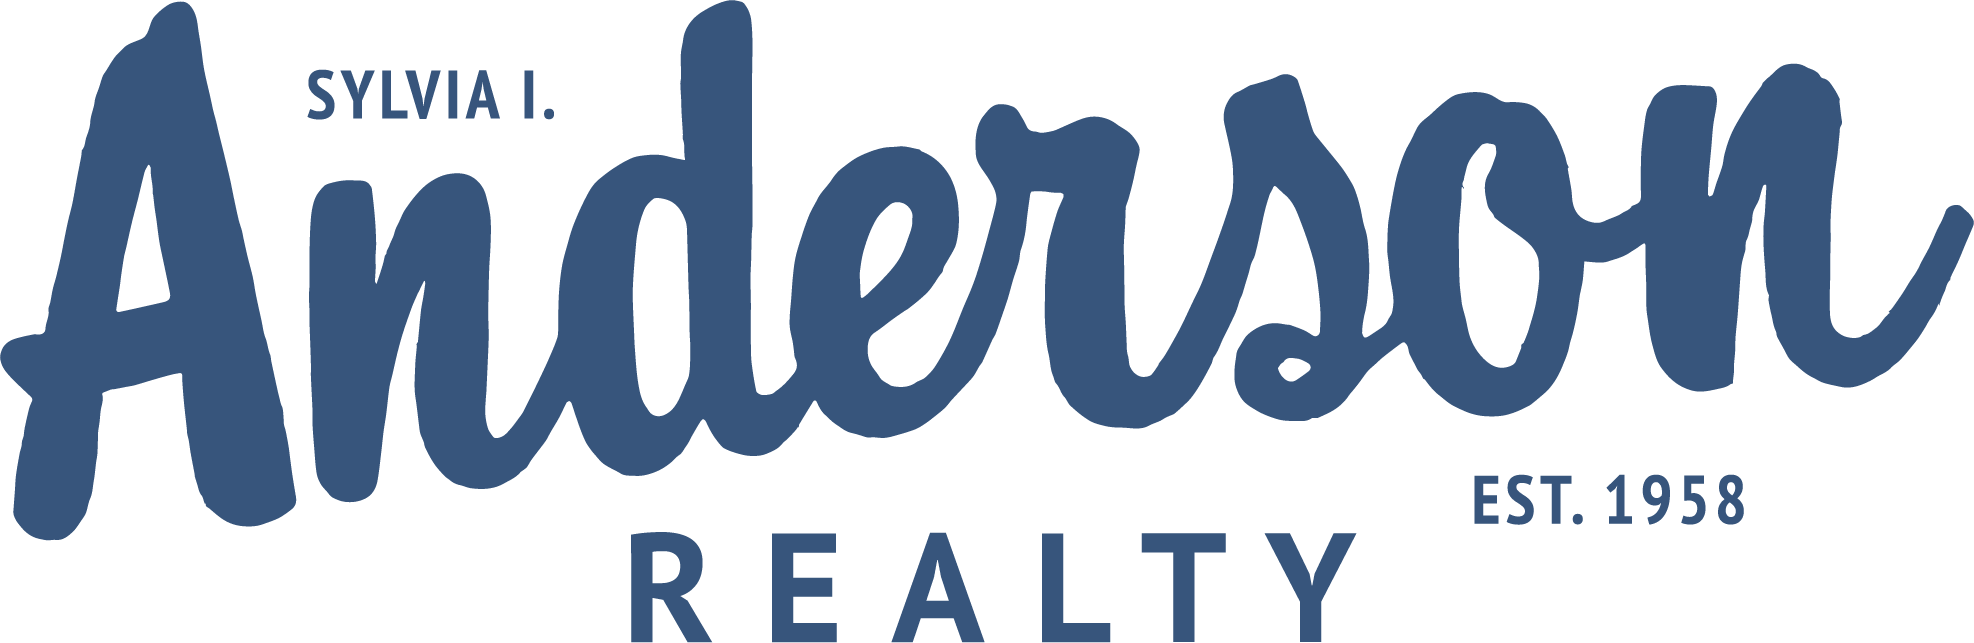 Anderson Realty